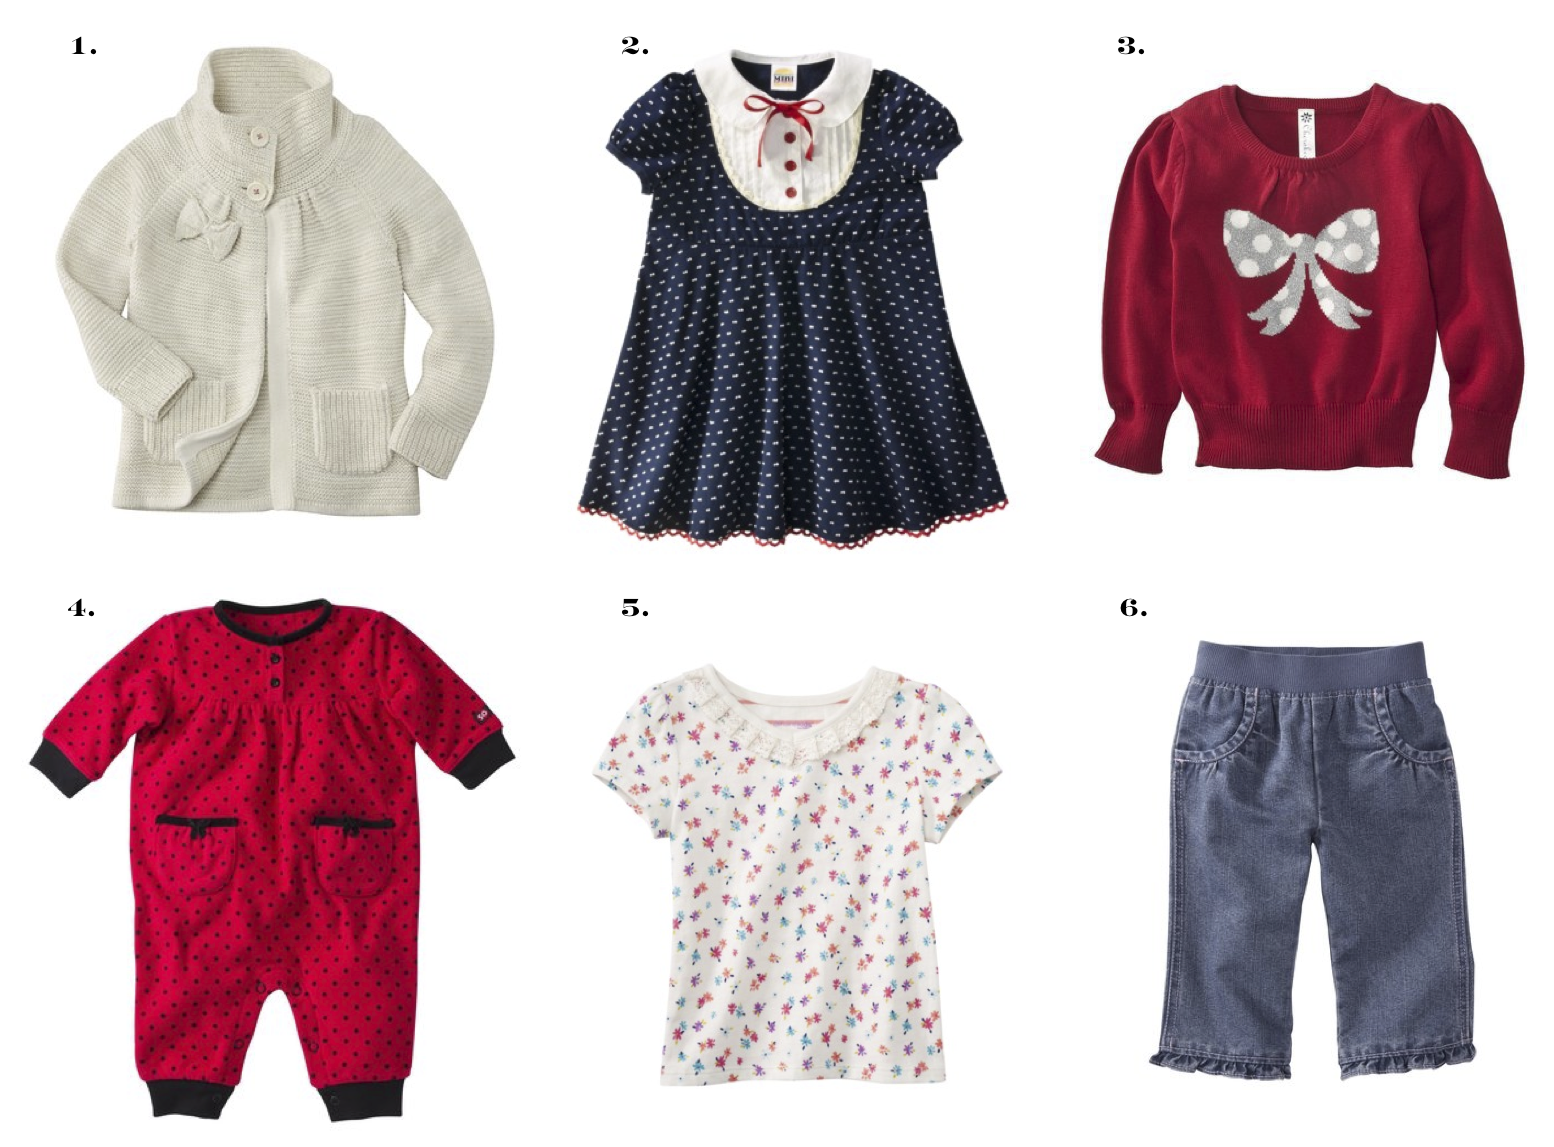 Baby Chic Cute Comfy Clothes Babies